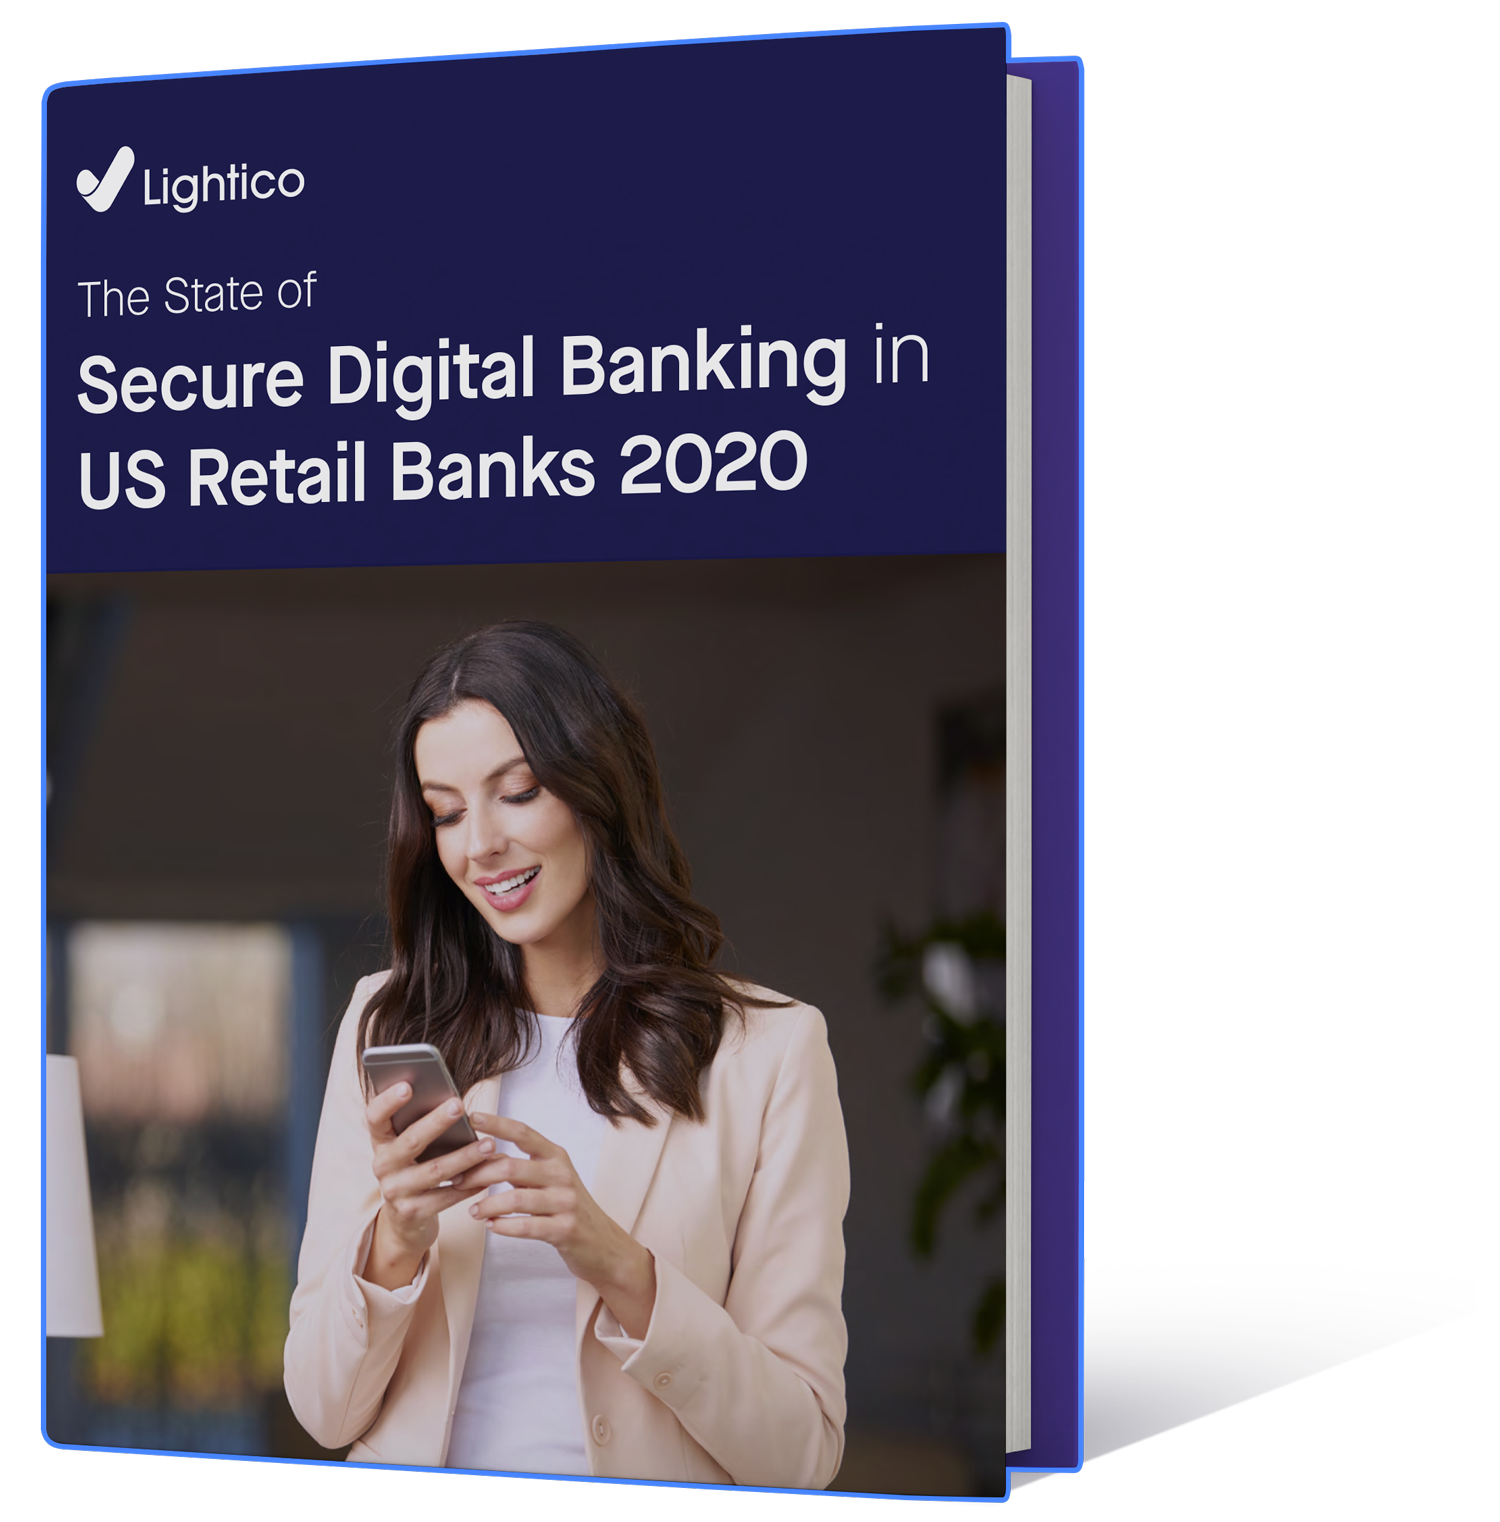 State-of-Secure-Digital-Banking-in-US-Retail-Banks-2020-RGBeBook-Free-Book-Title-Cover-Mockup